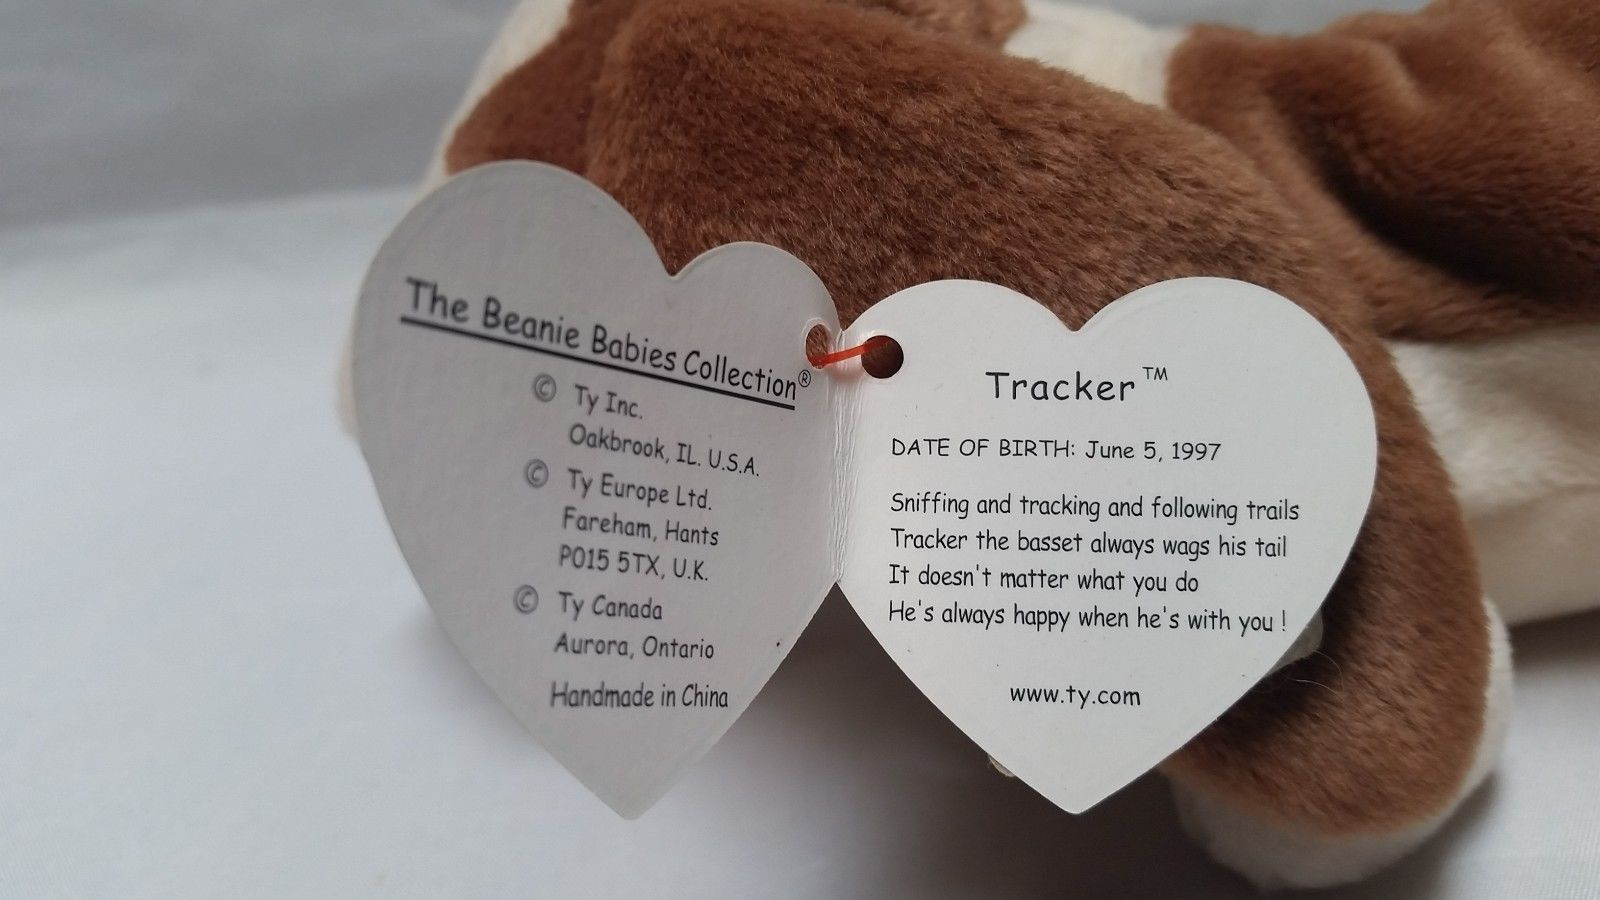 db61570727f Ty Beanie Tracker Babies Baby Basset Hound Dog Toy Swing Tag Error 97 98  Retired